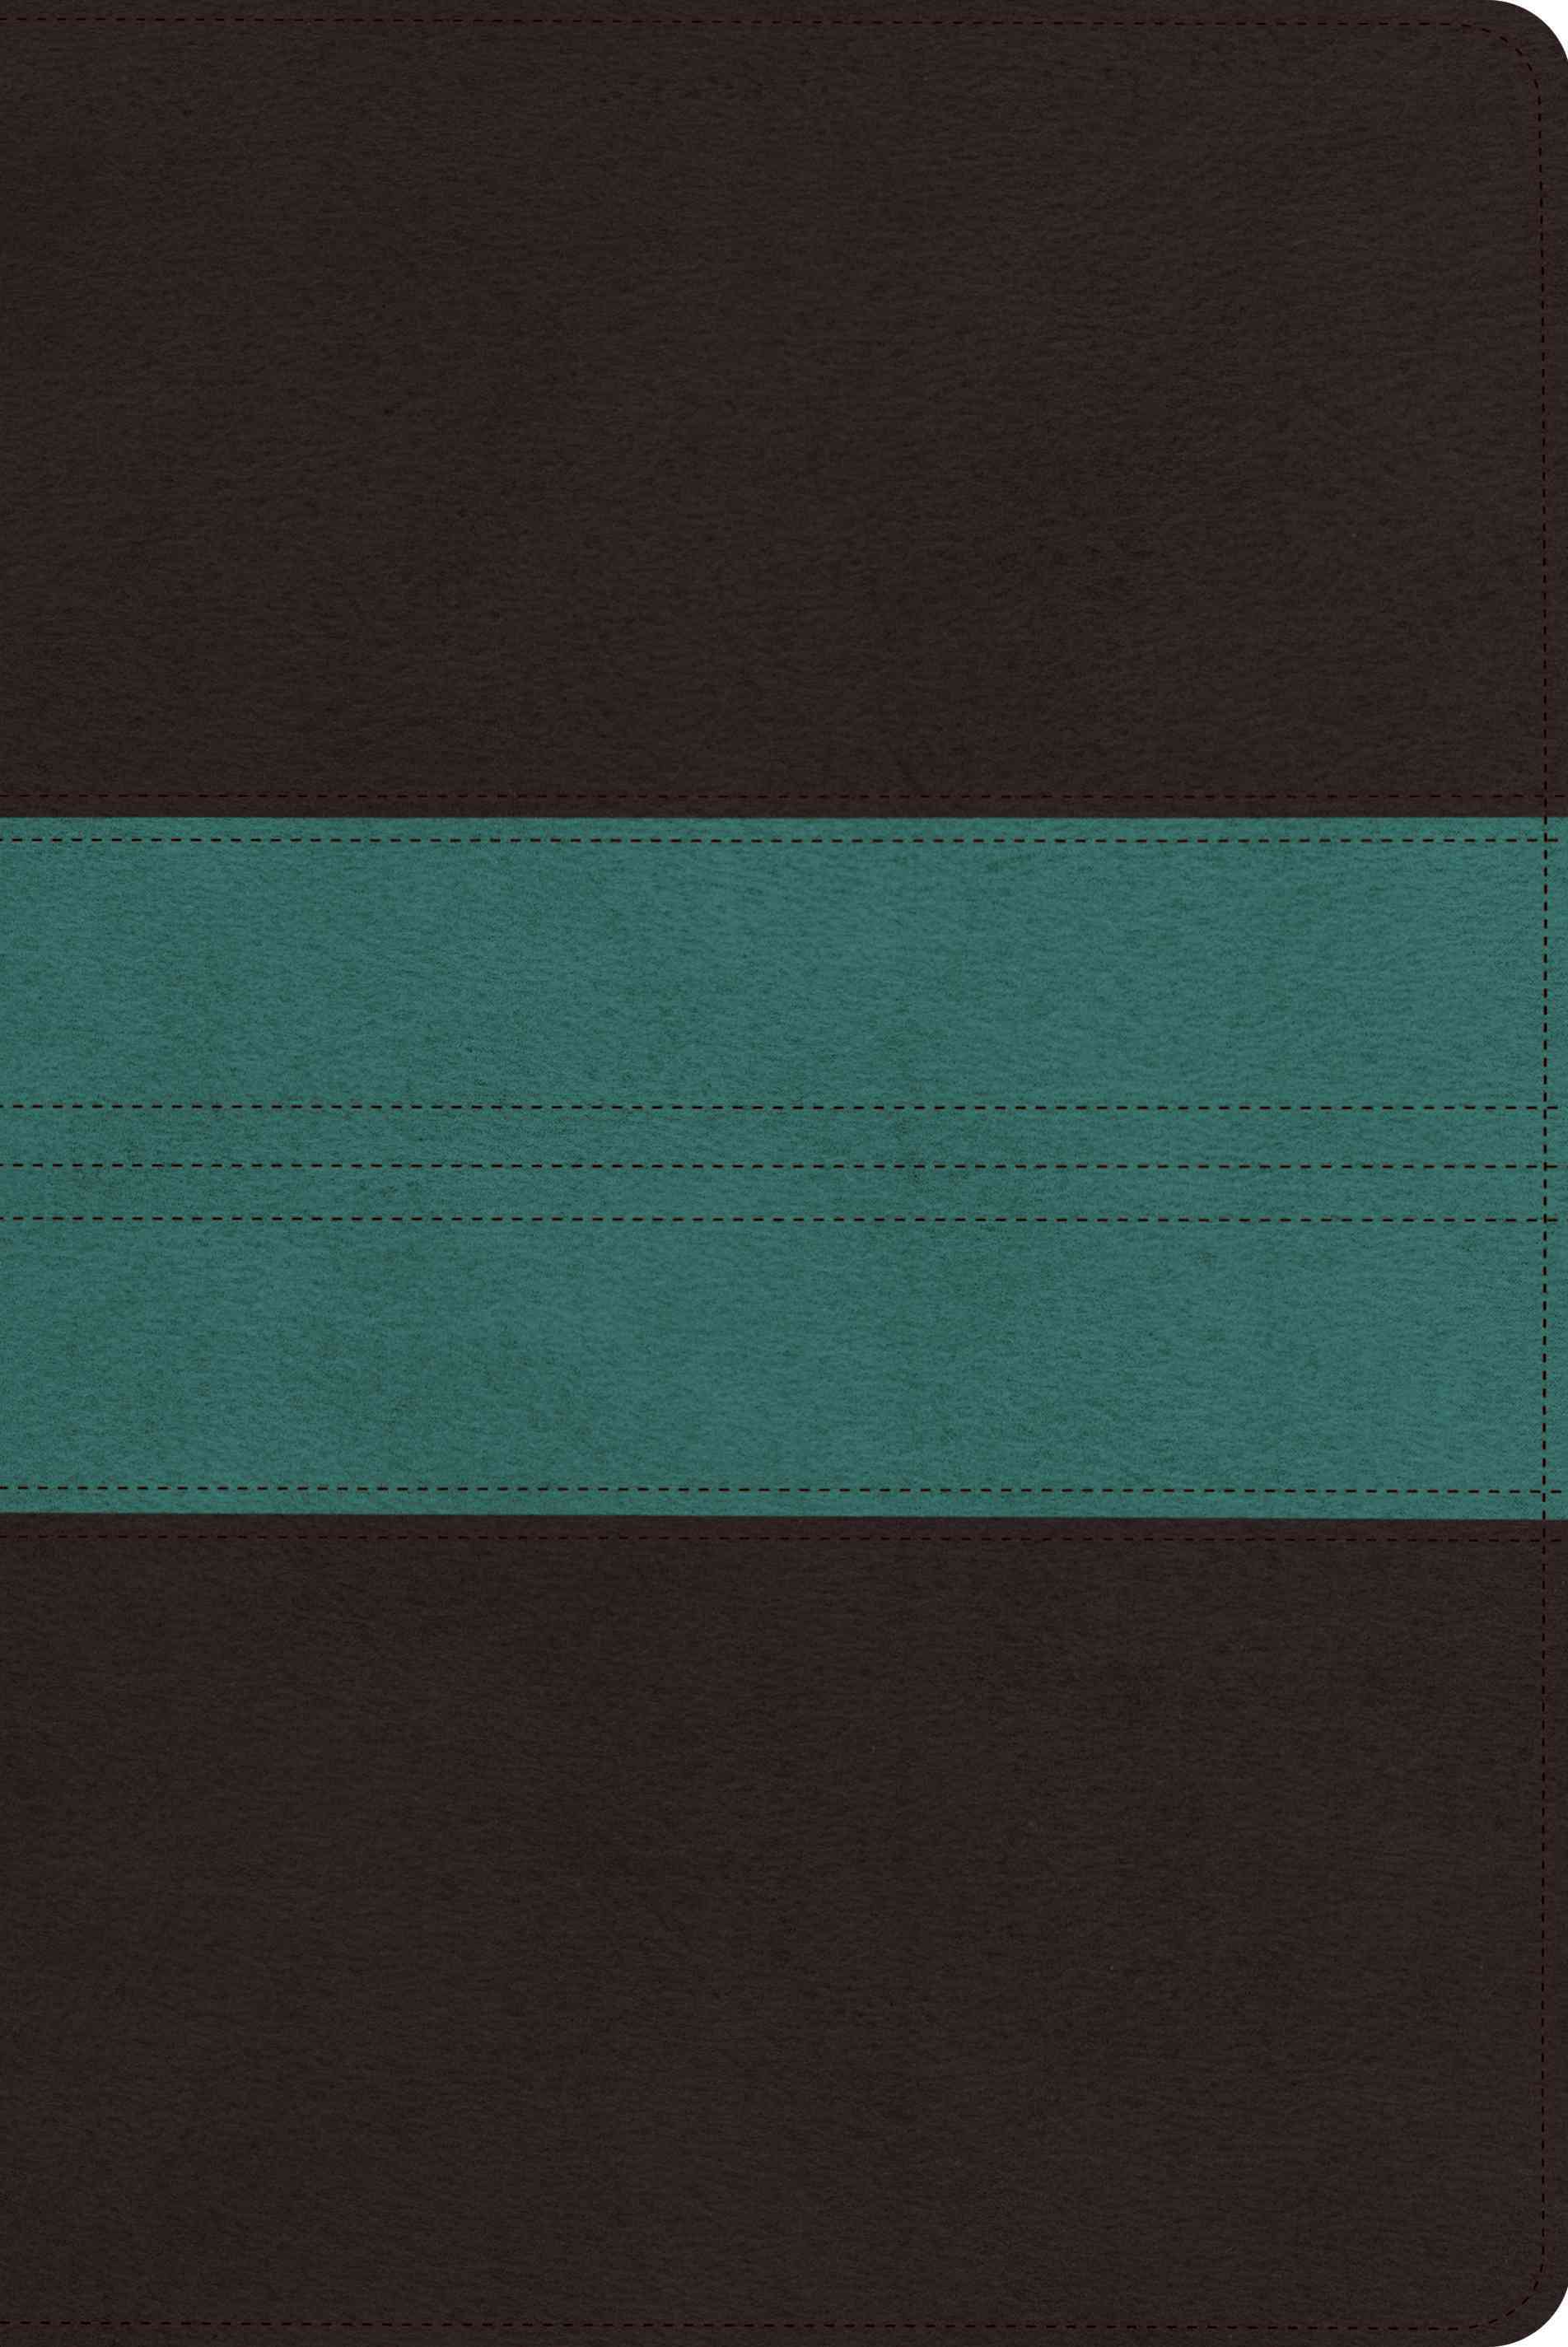 Holy Bible: English Standard Version, Dark Brown / Teal, Trail Design, TruTone, Personal Reference (Paperback)